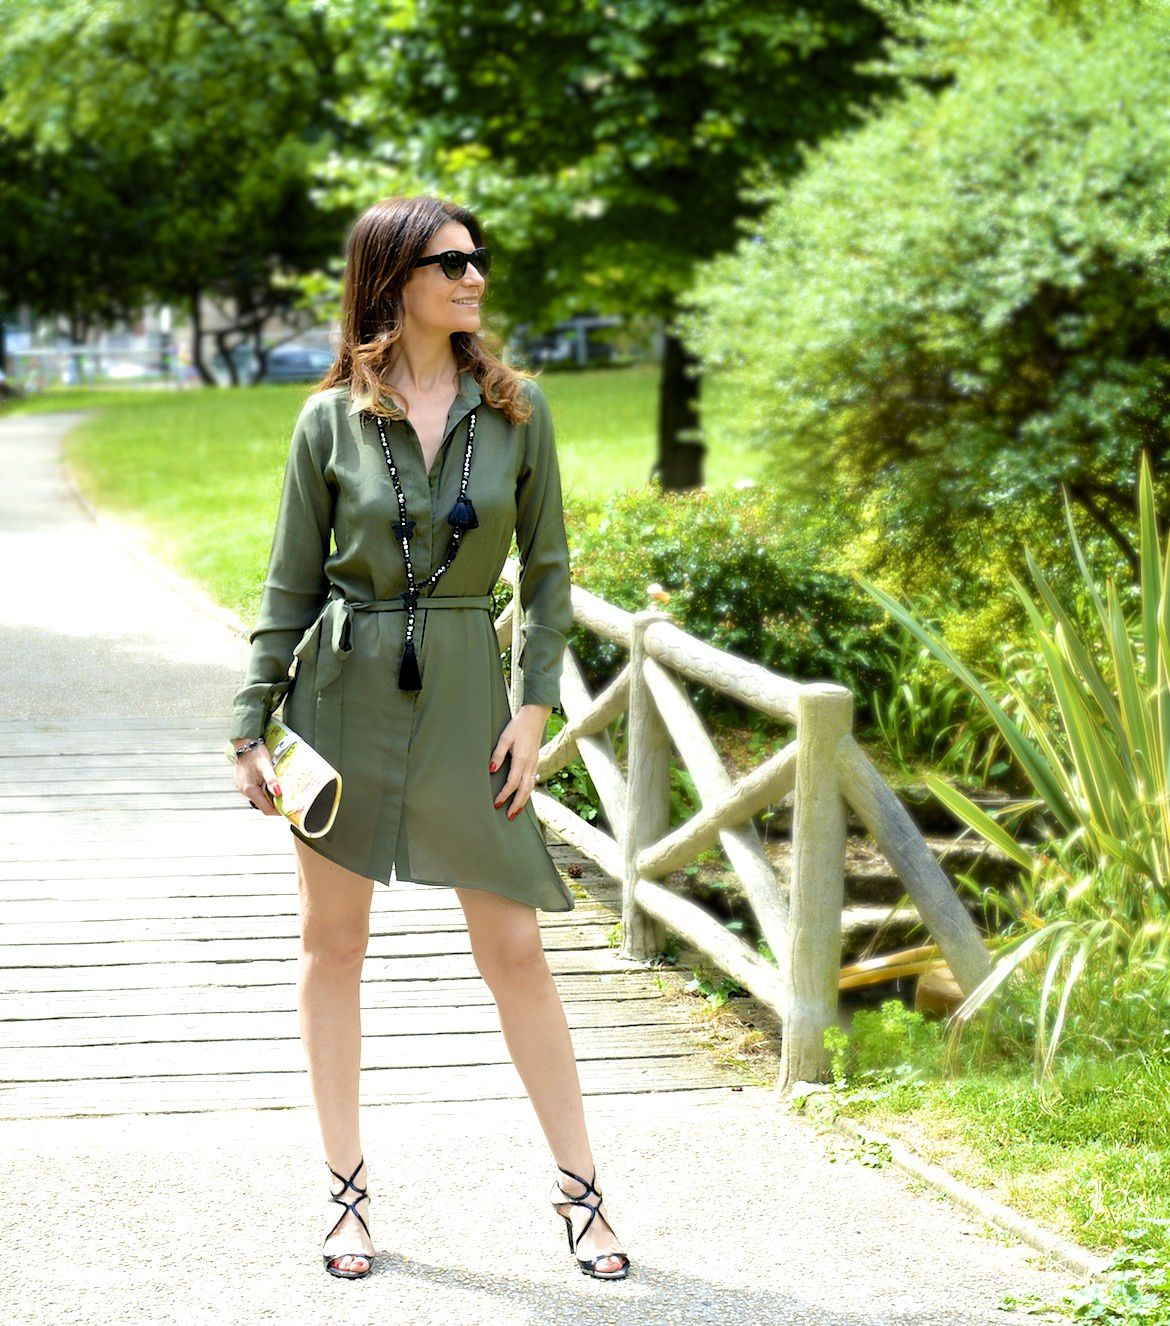 Chic khaki dress 💚